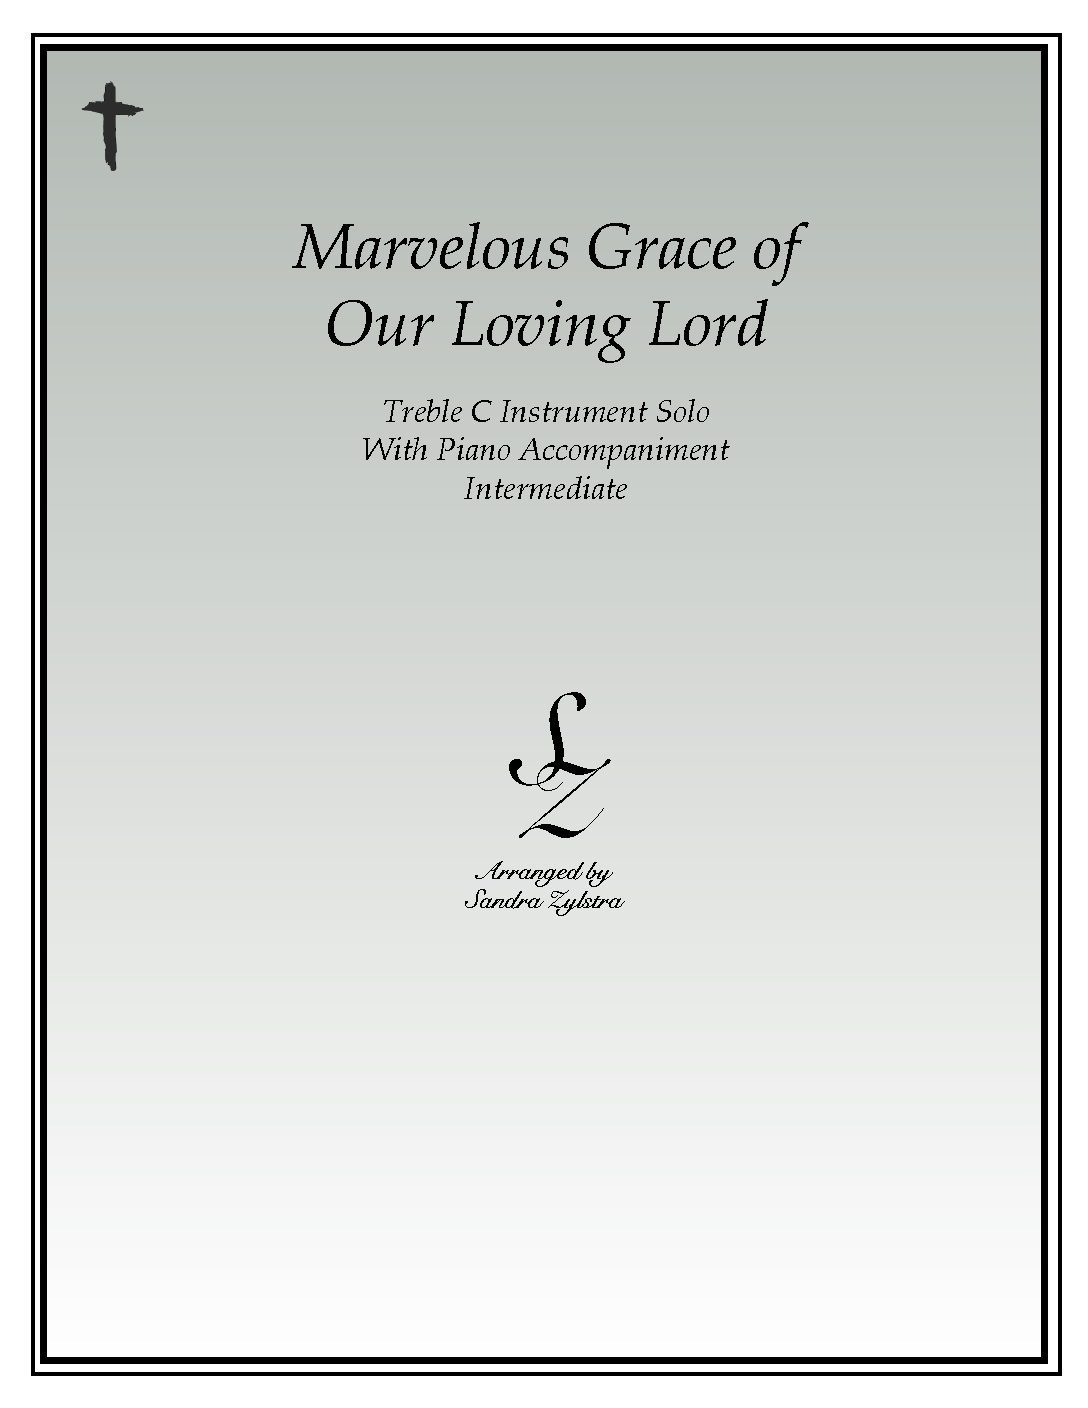 Marvelous Grace Of Our Loving Lord -Treble C Instrument Solo